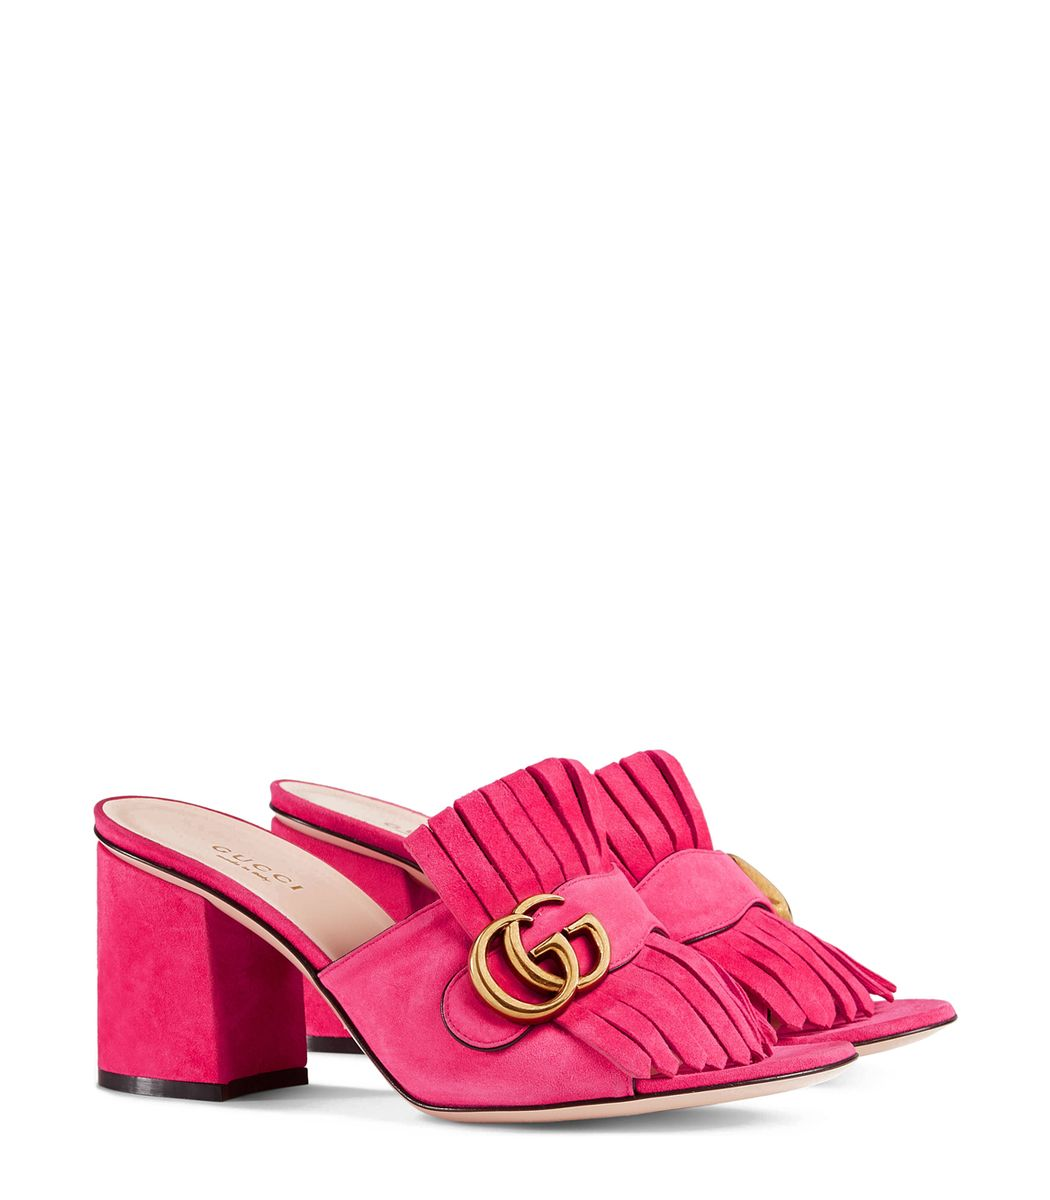 7448cea5eed Pink suede mule featuring black pipping and fold-over fringe detail.  ShopBazaar